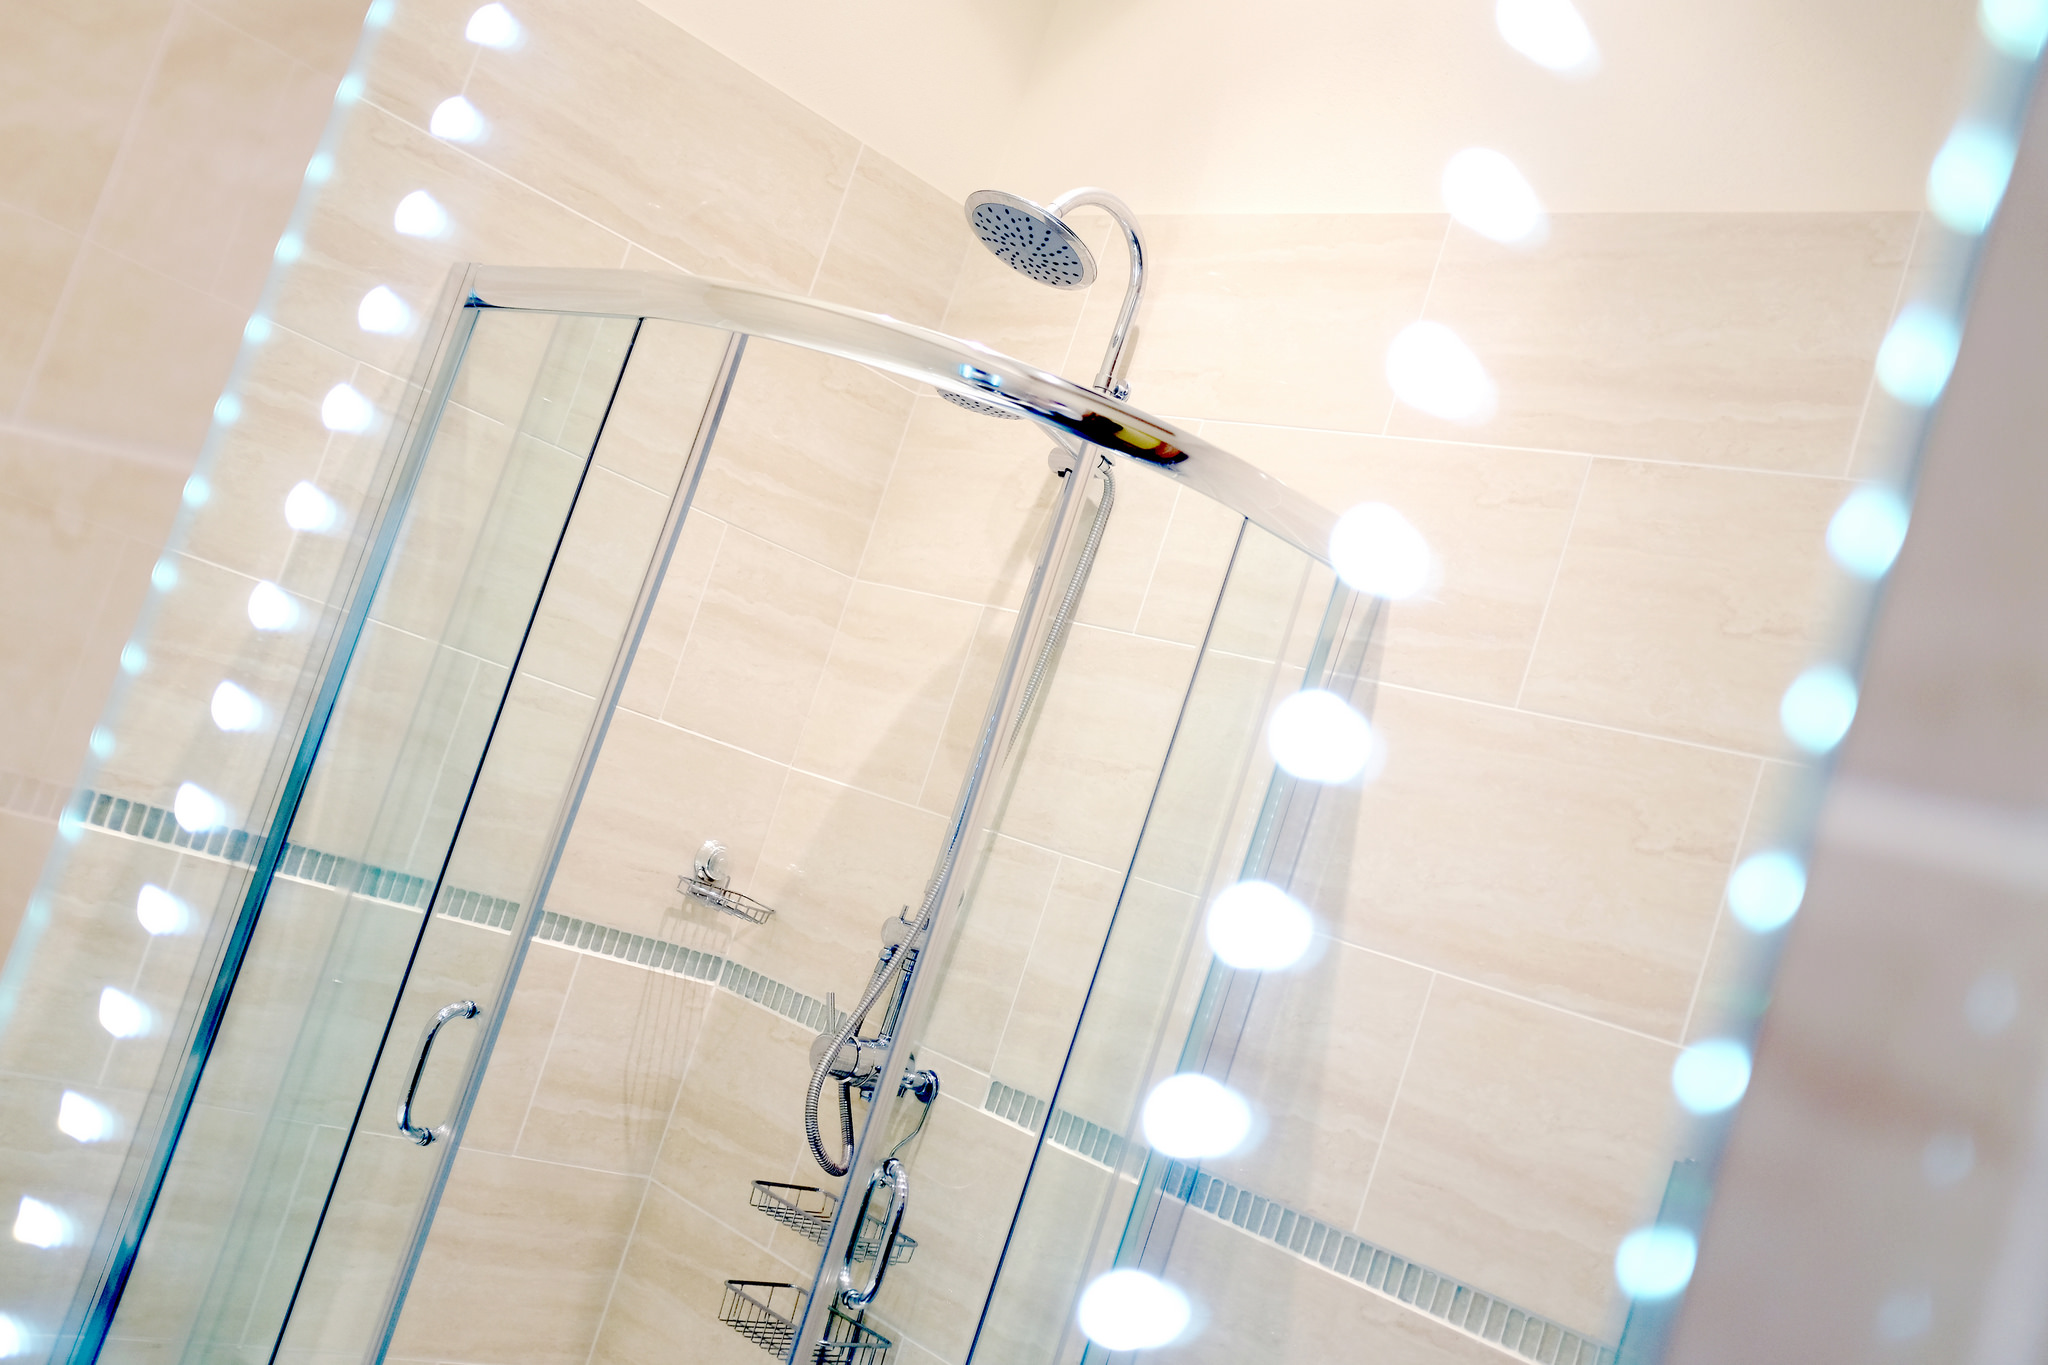 LED mirror with the walk-shower showing in reflection